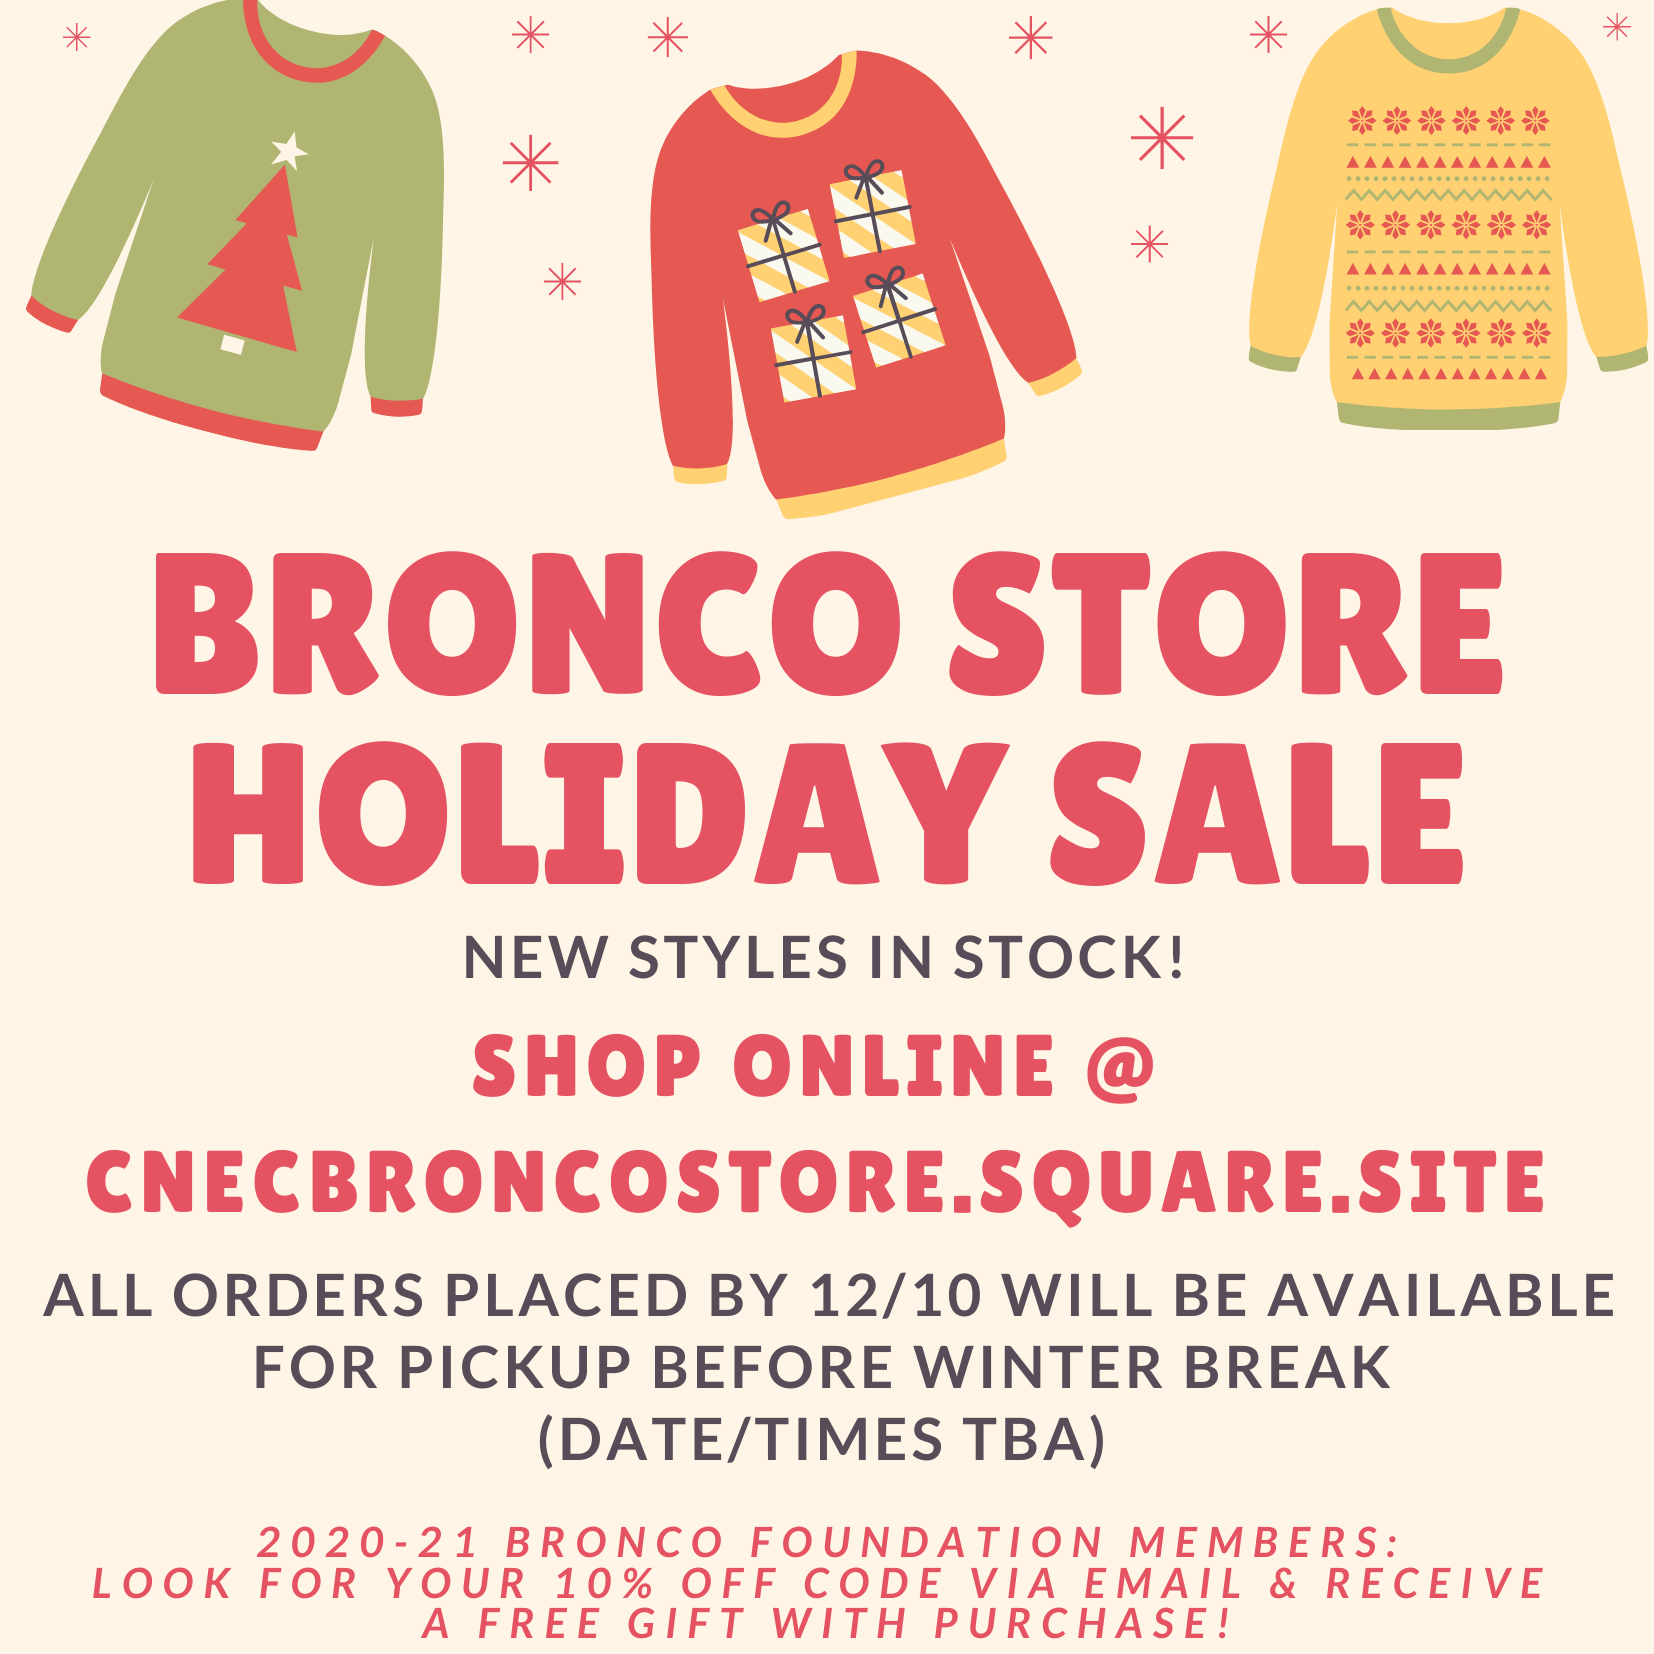 Bronco Store Holiday Sale